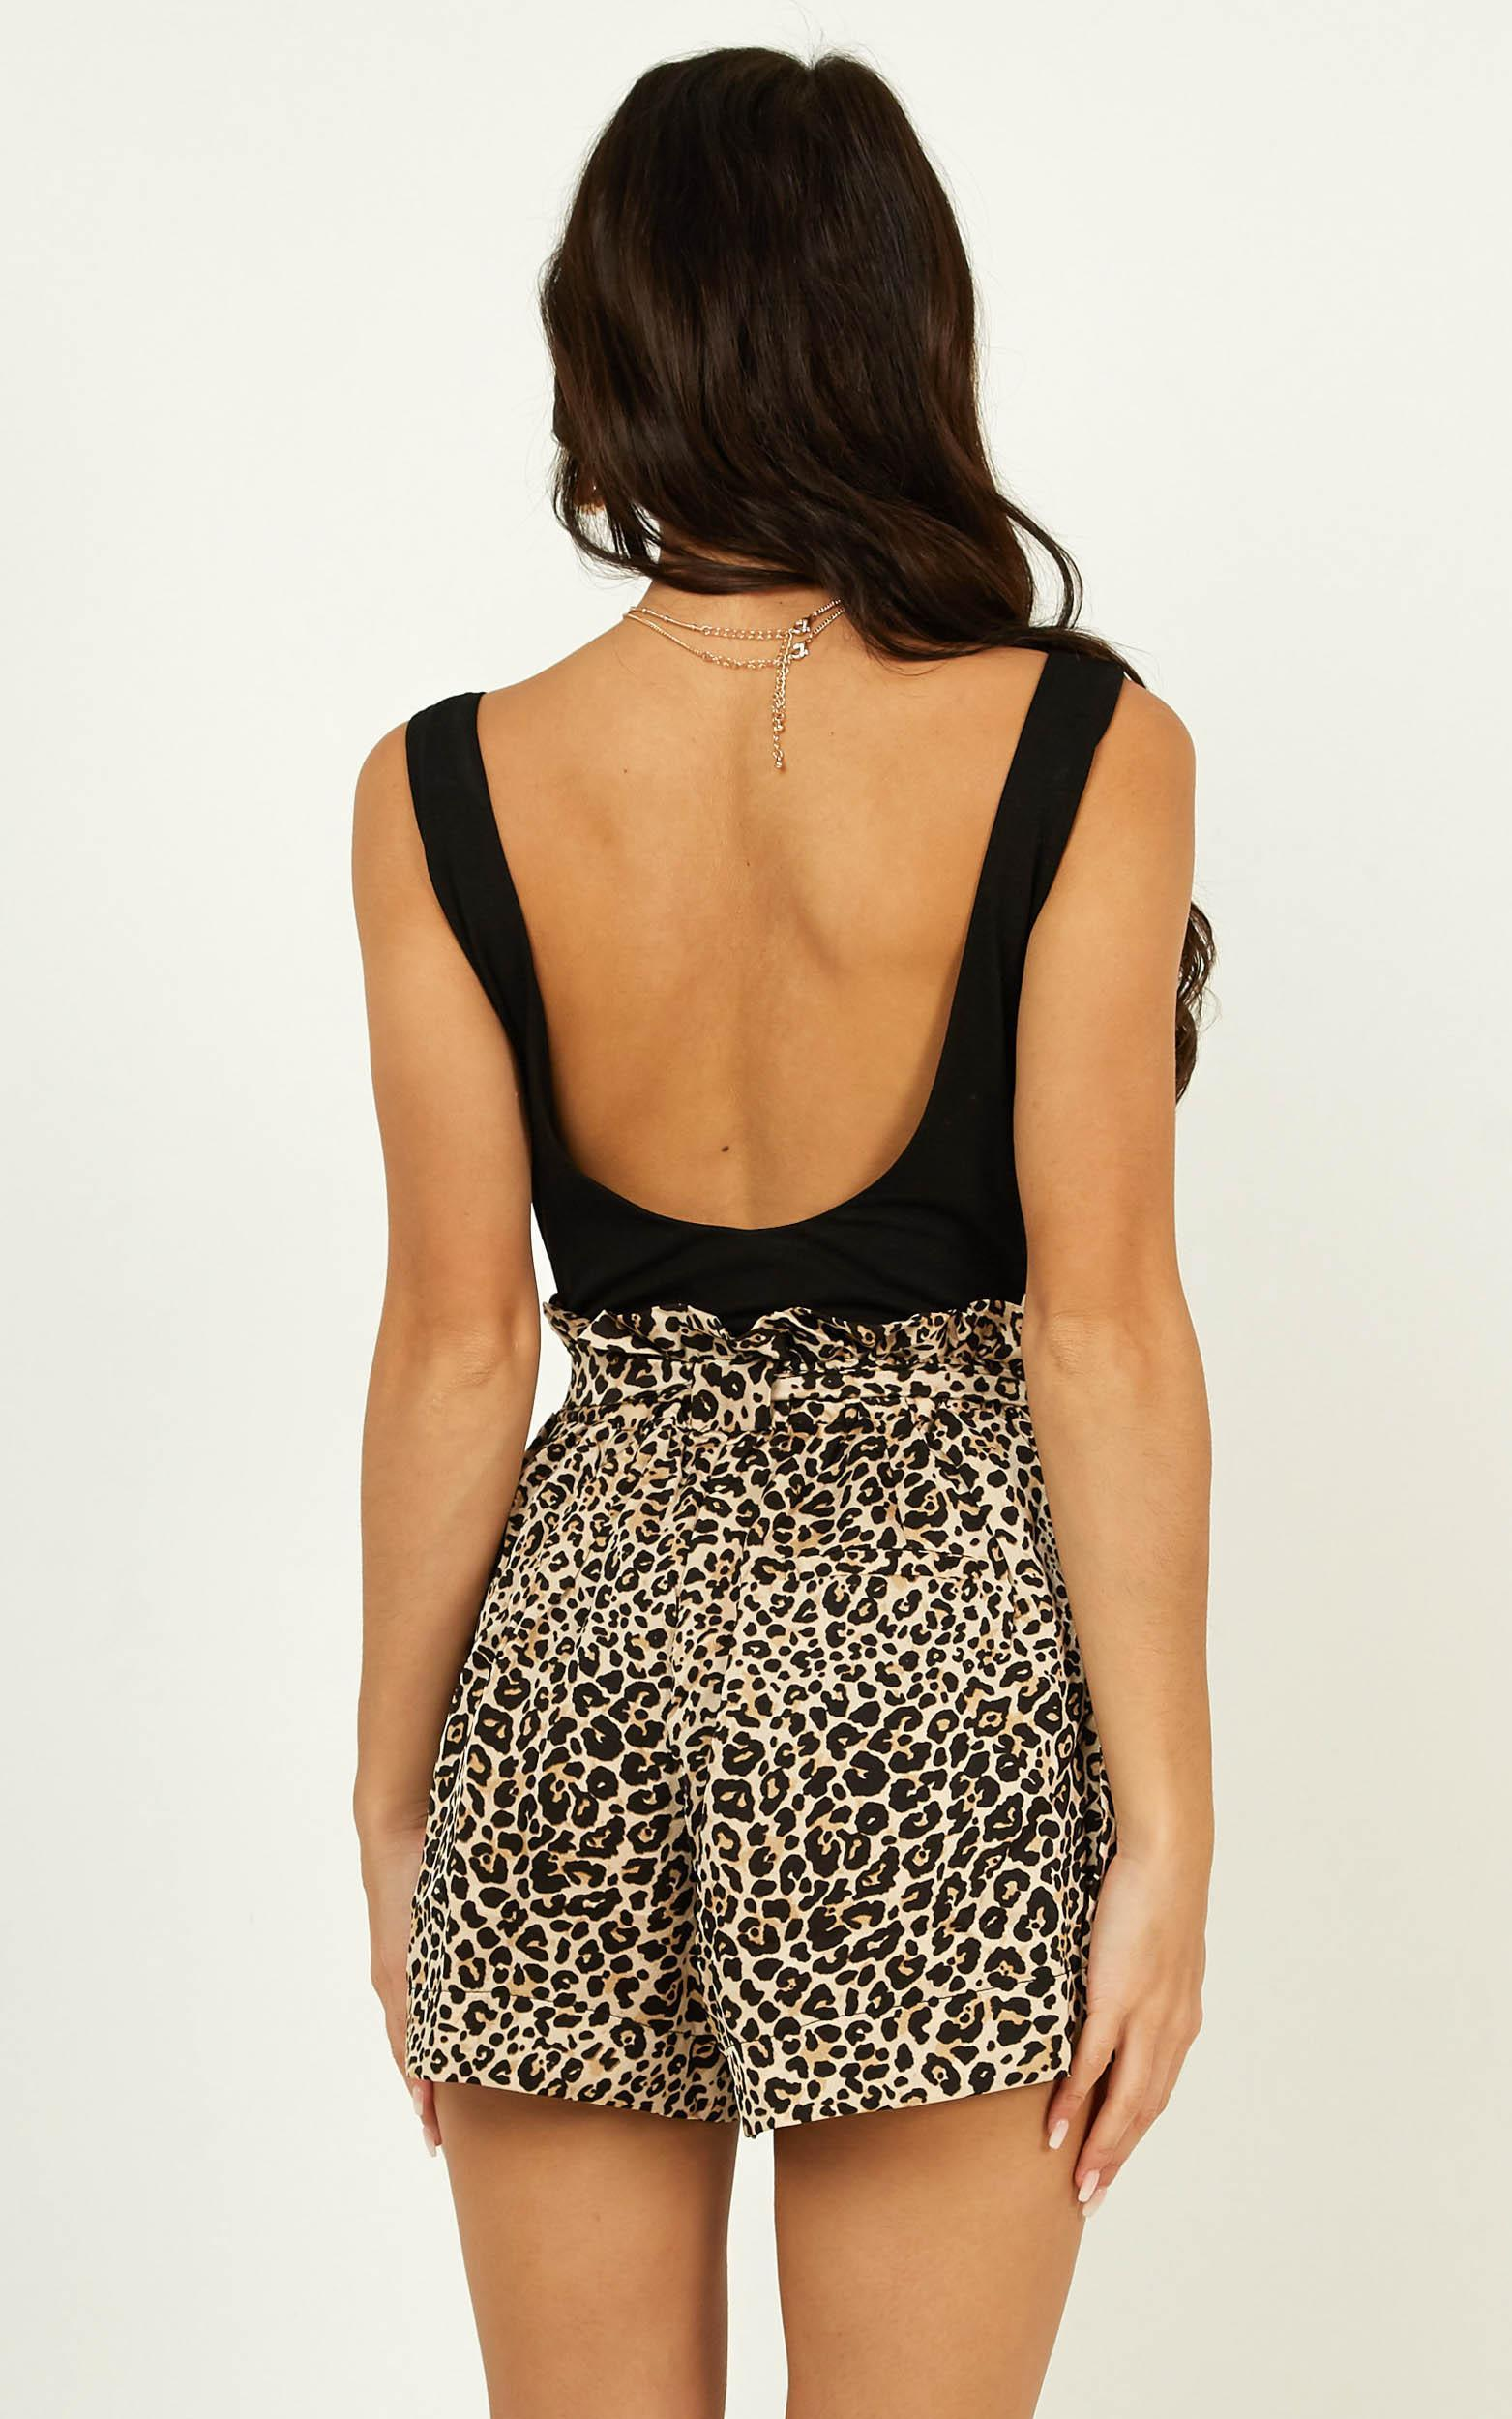 All Rounder Shorts in leopard print - 20 (XXXXL), Brown, hi-res image number null